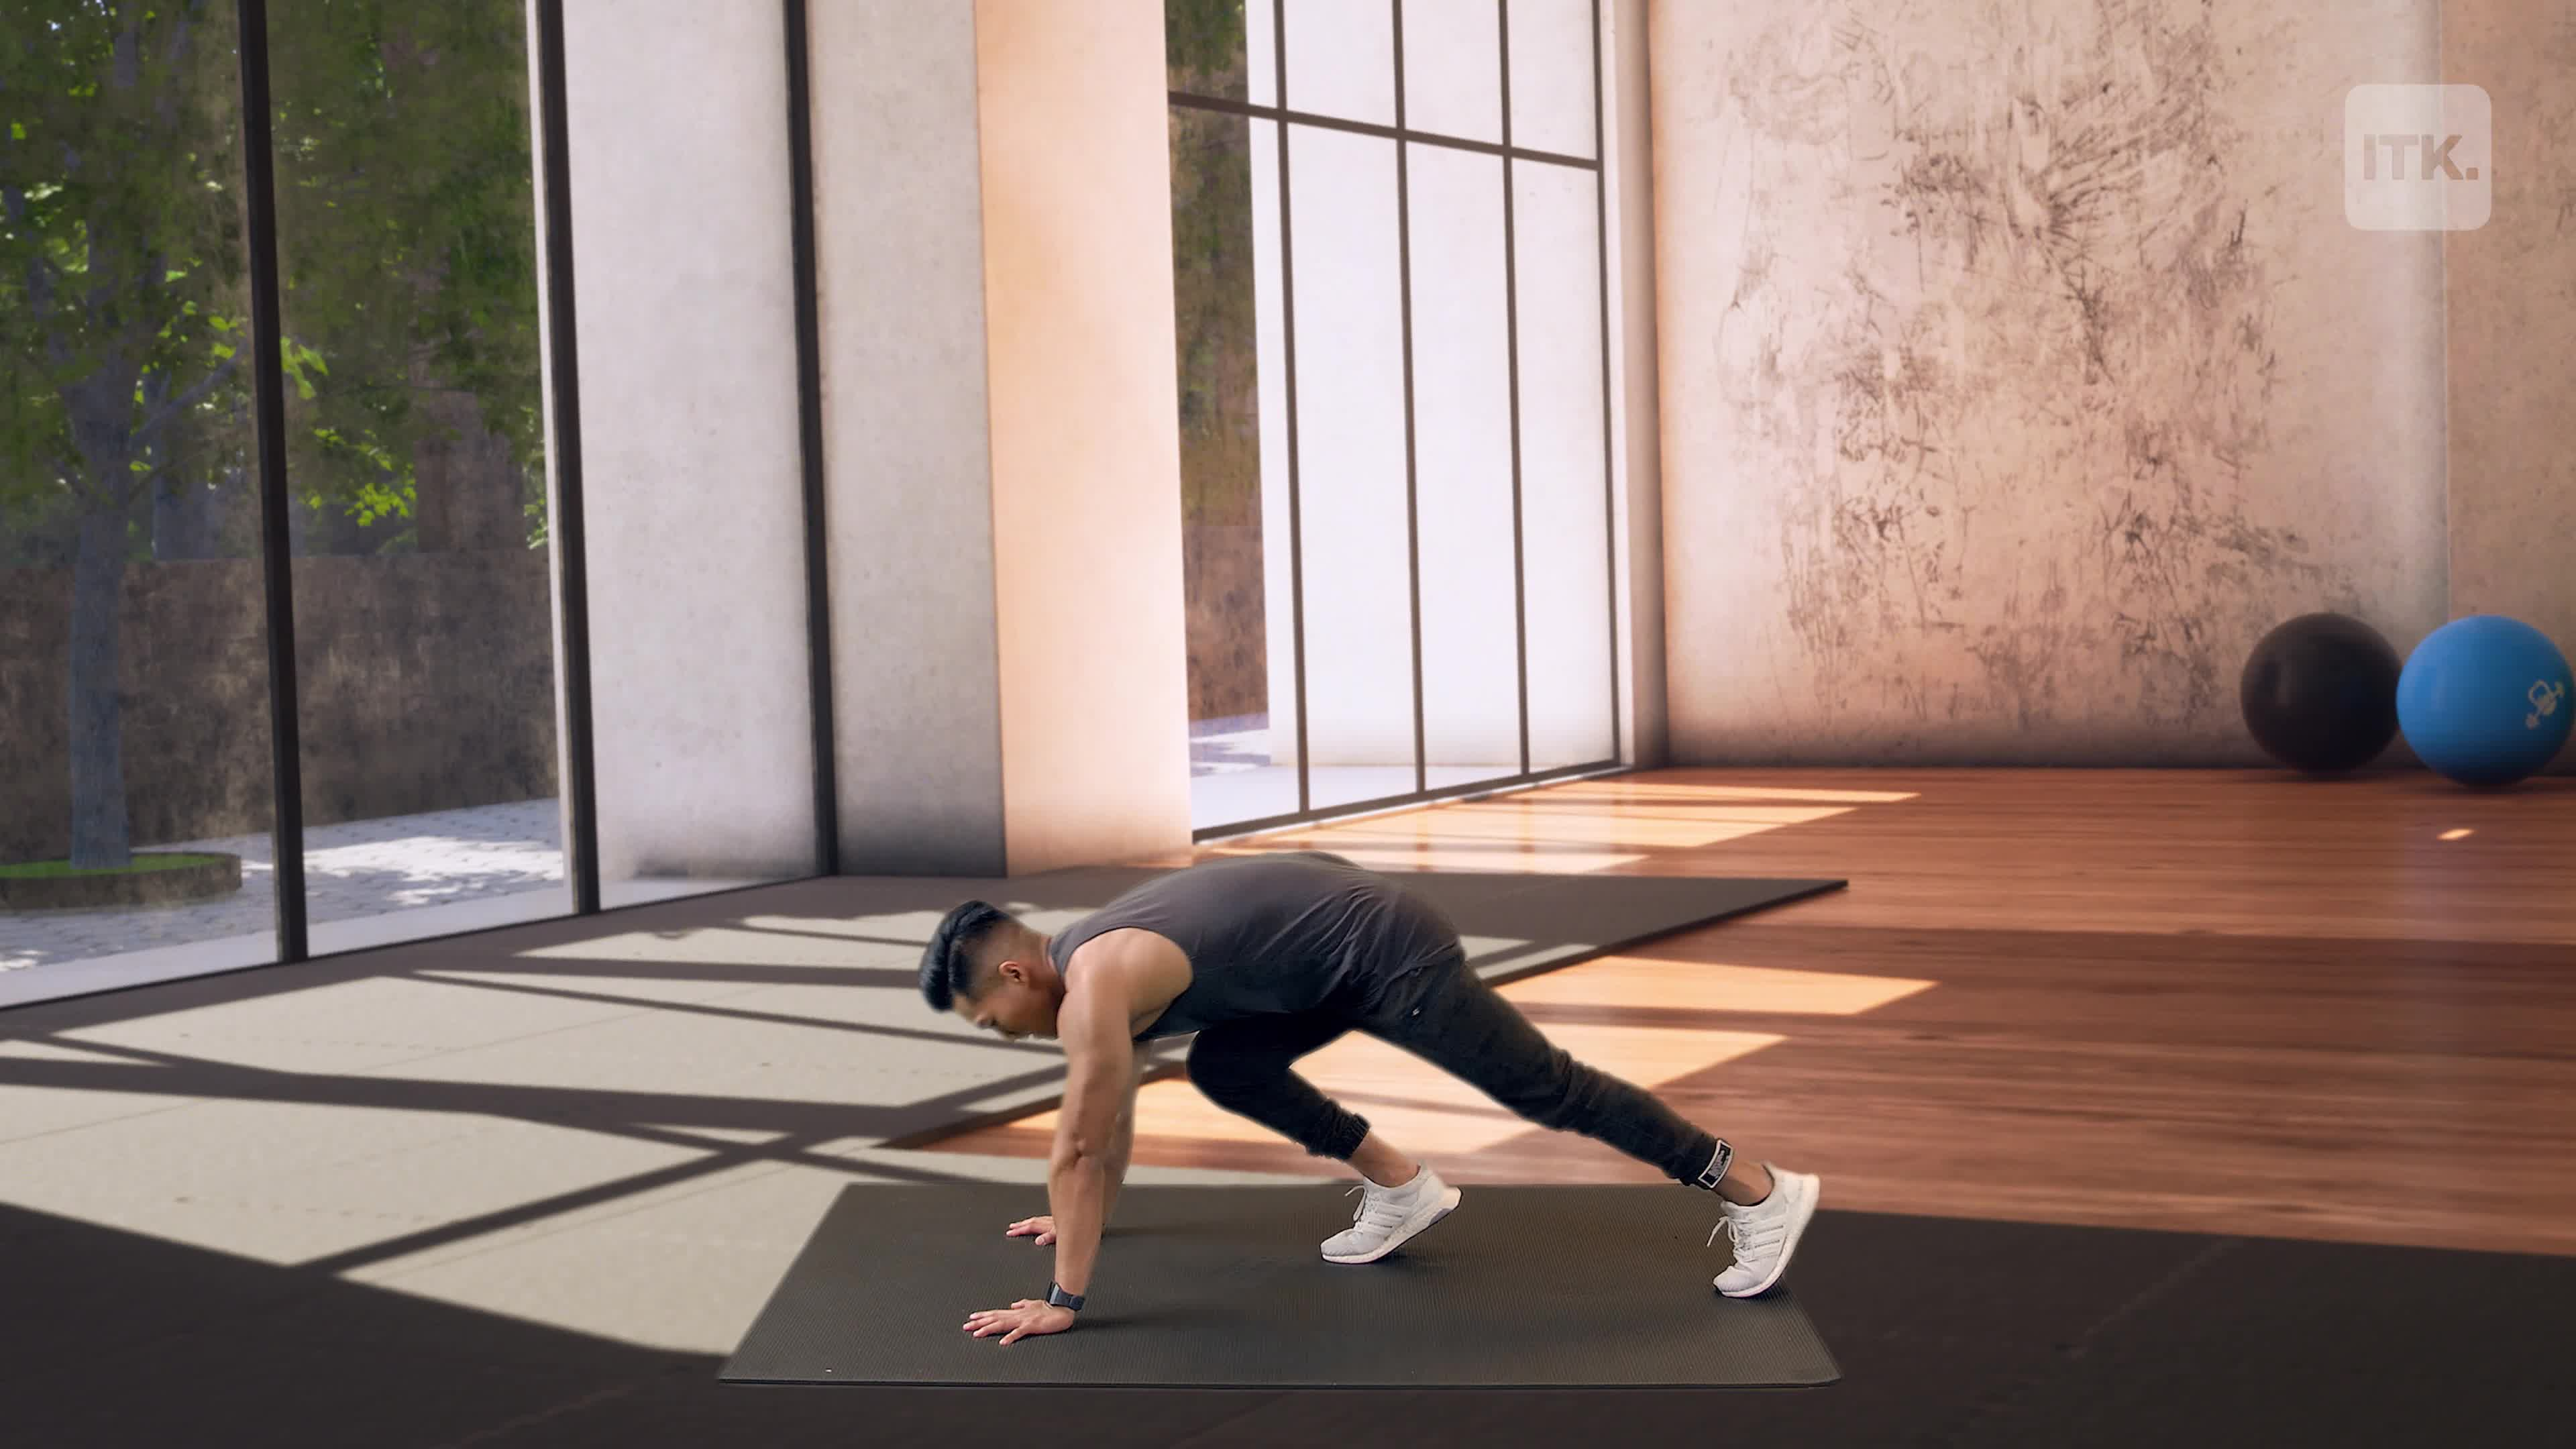 These 3 moves are guaranteed to give you the best full body stretch